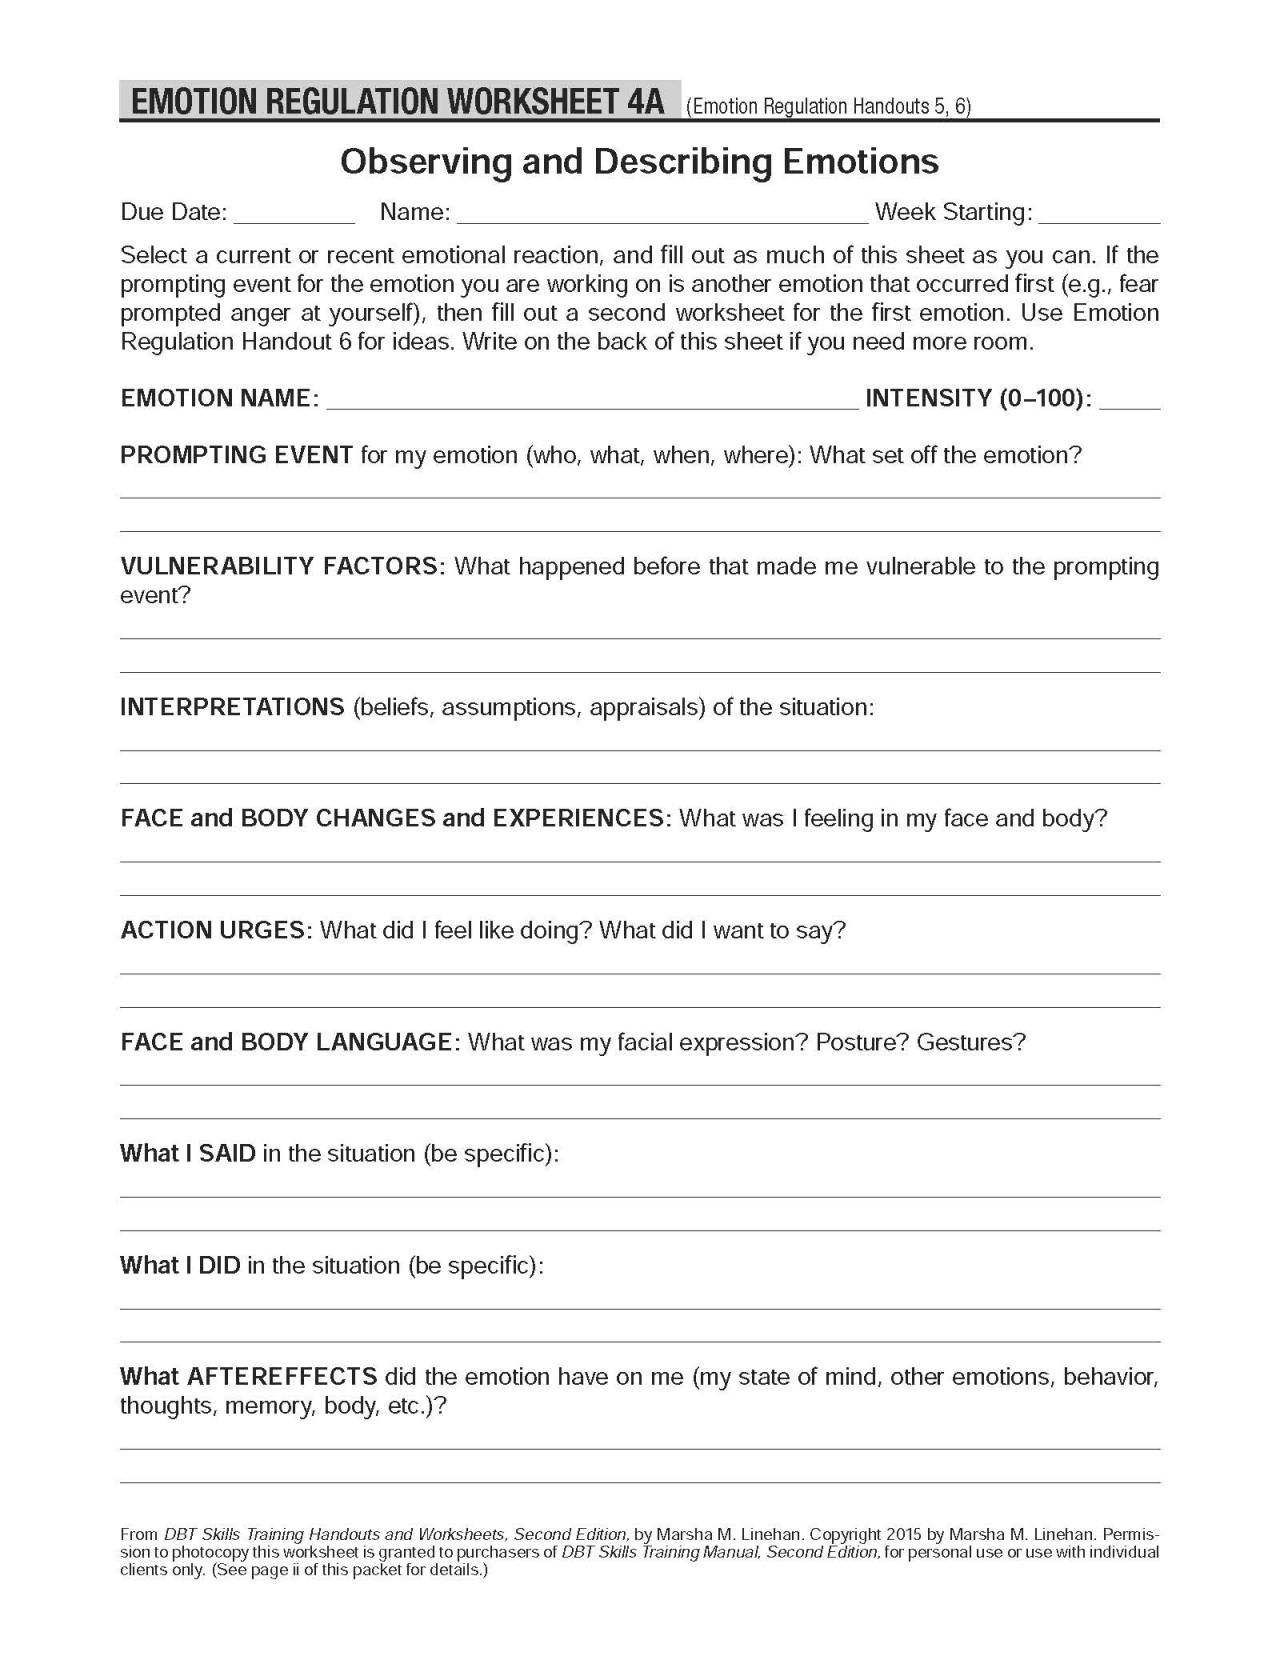 Worksheets Self Help Worksheets dbt self help resources observing and describing emotions these worksheets accompany the emotion regulation